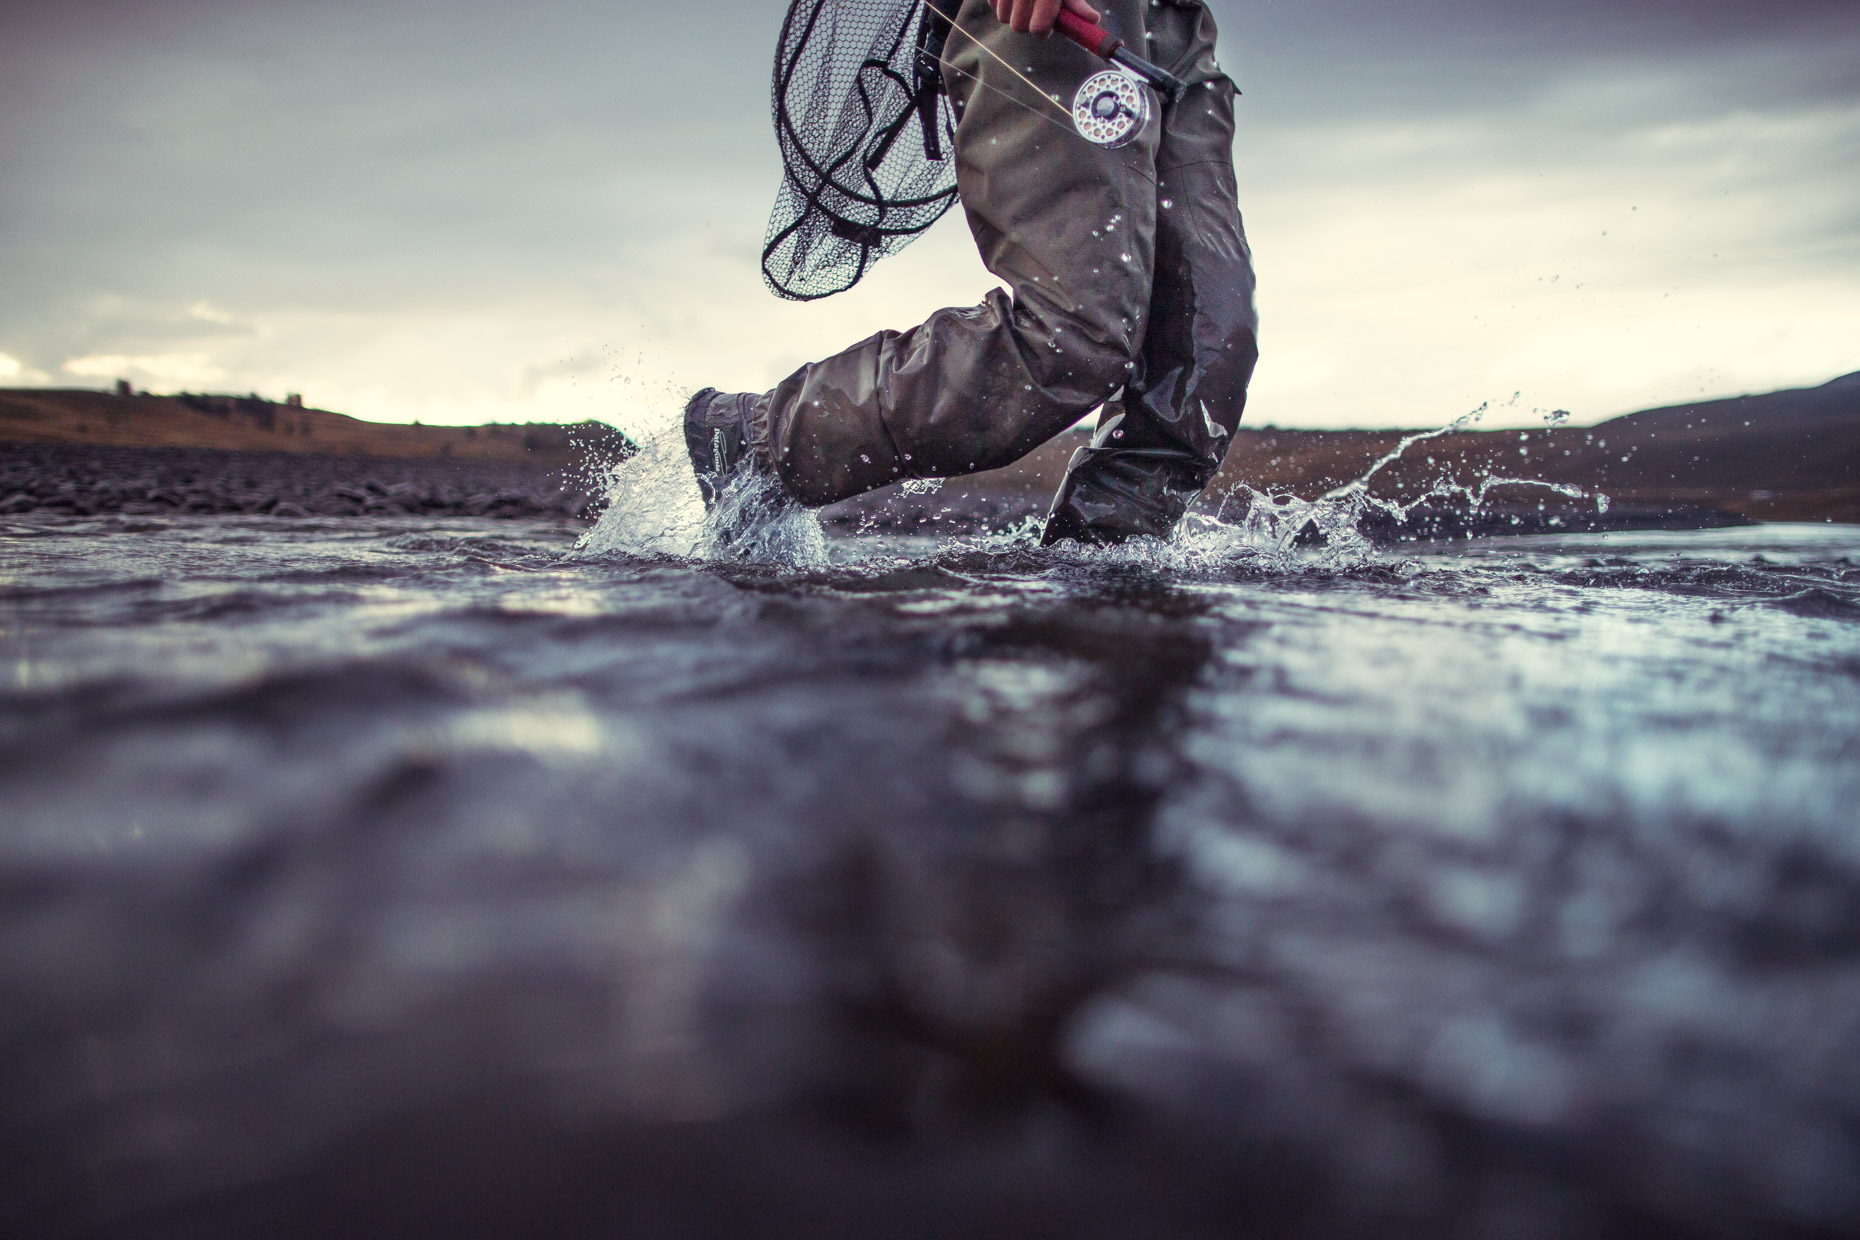 WOT_FLY_FISHING_2456-Edit